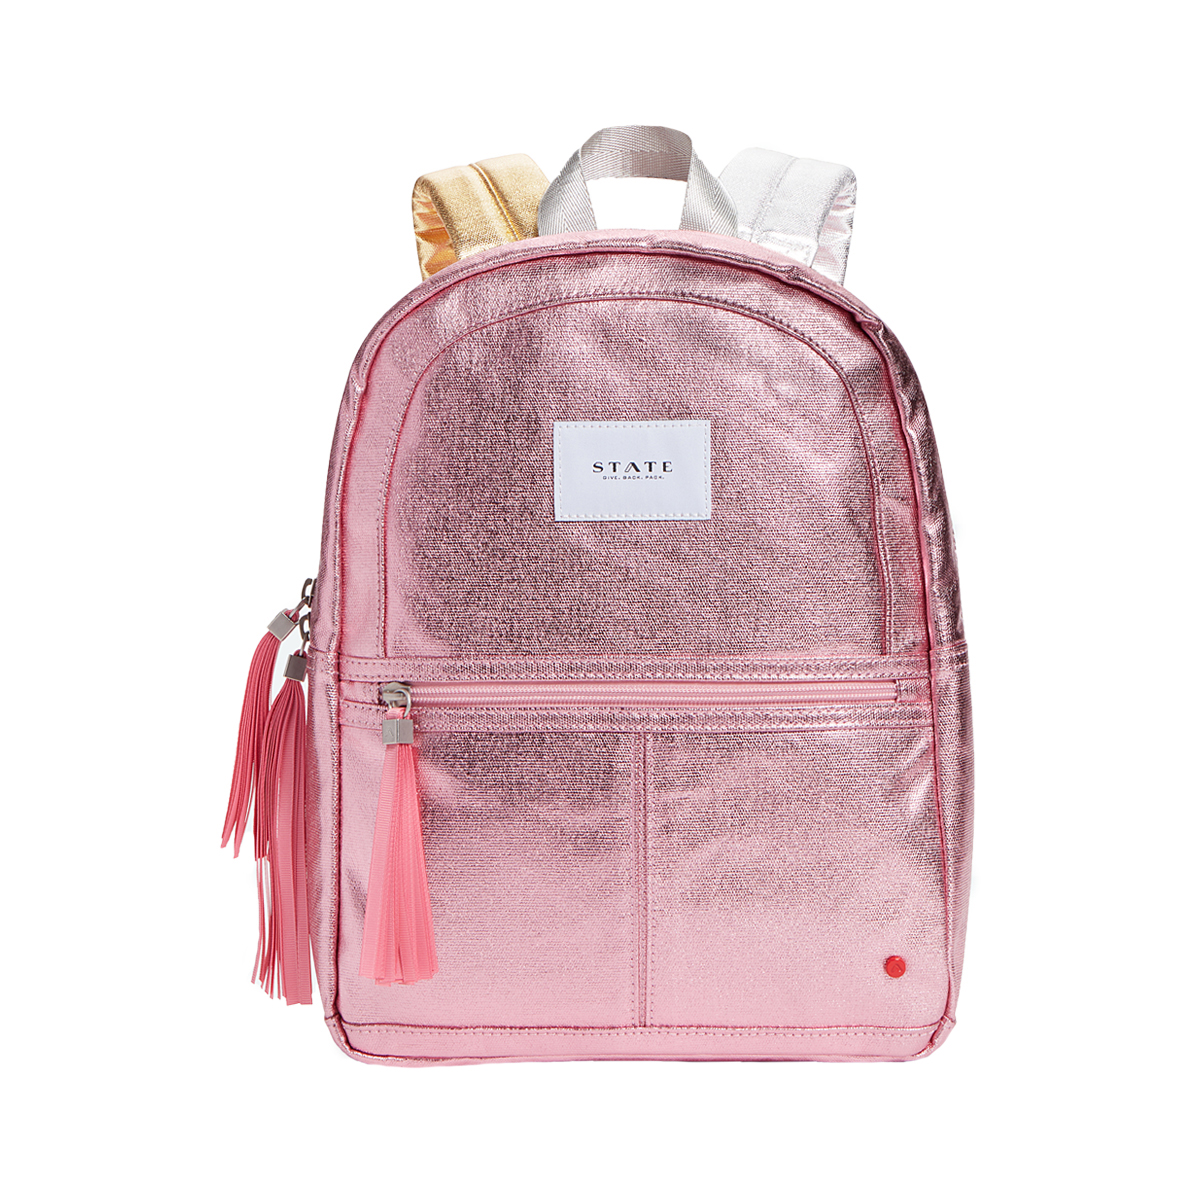 State Bags Mini Kane Backpack in Metallic Pink